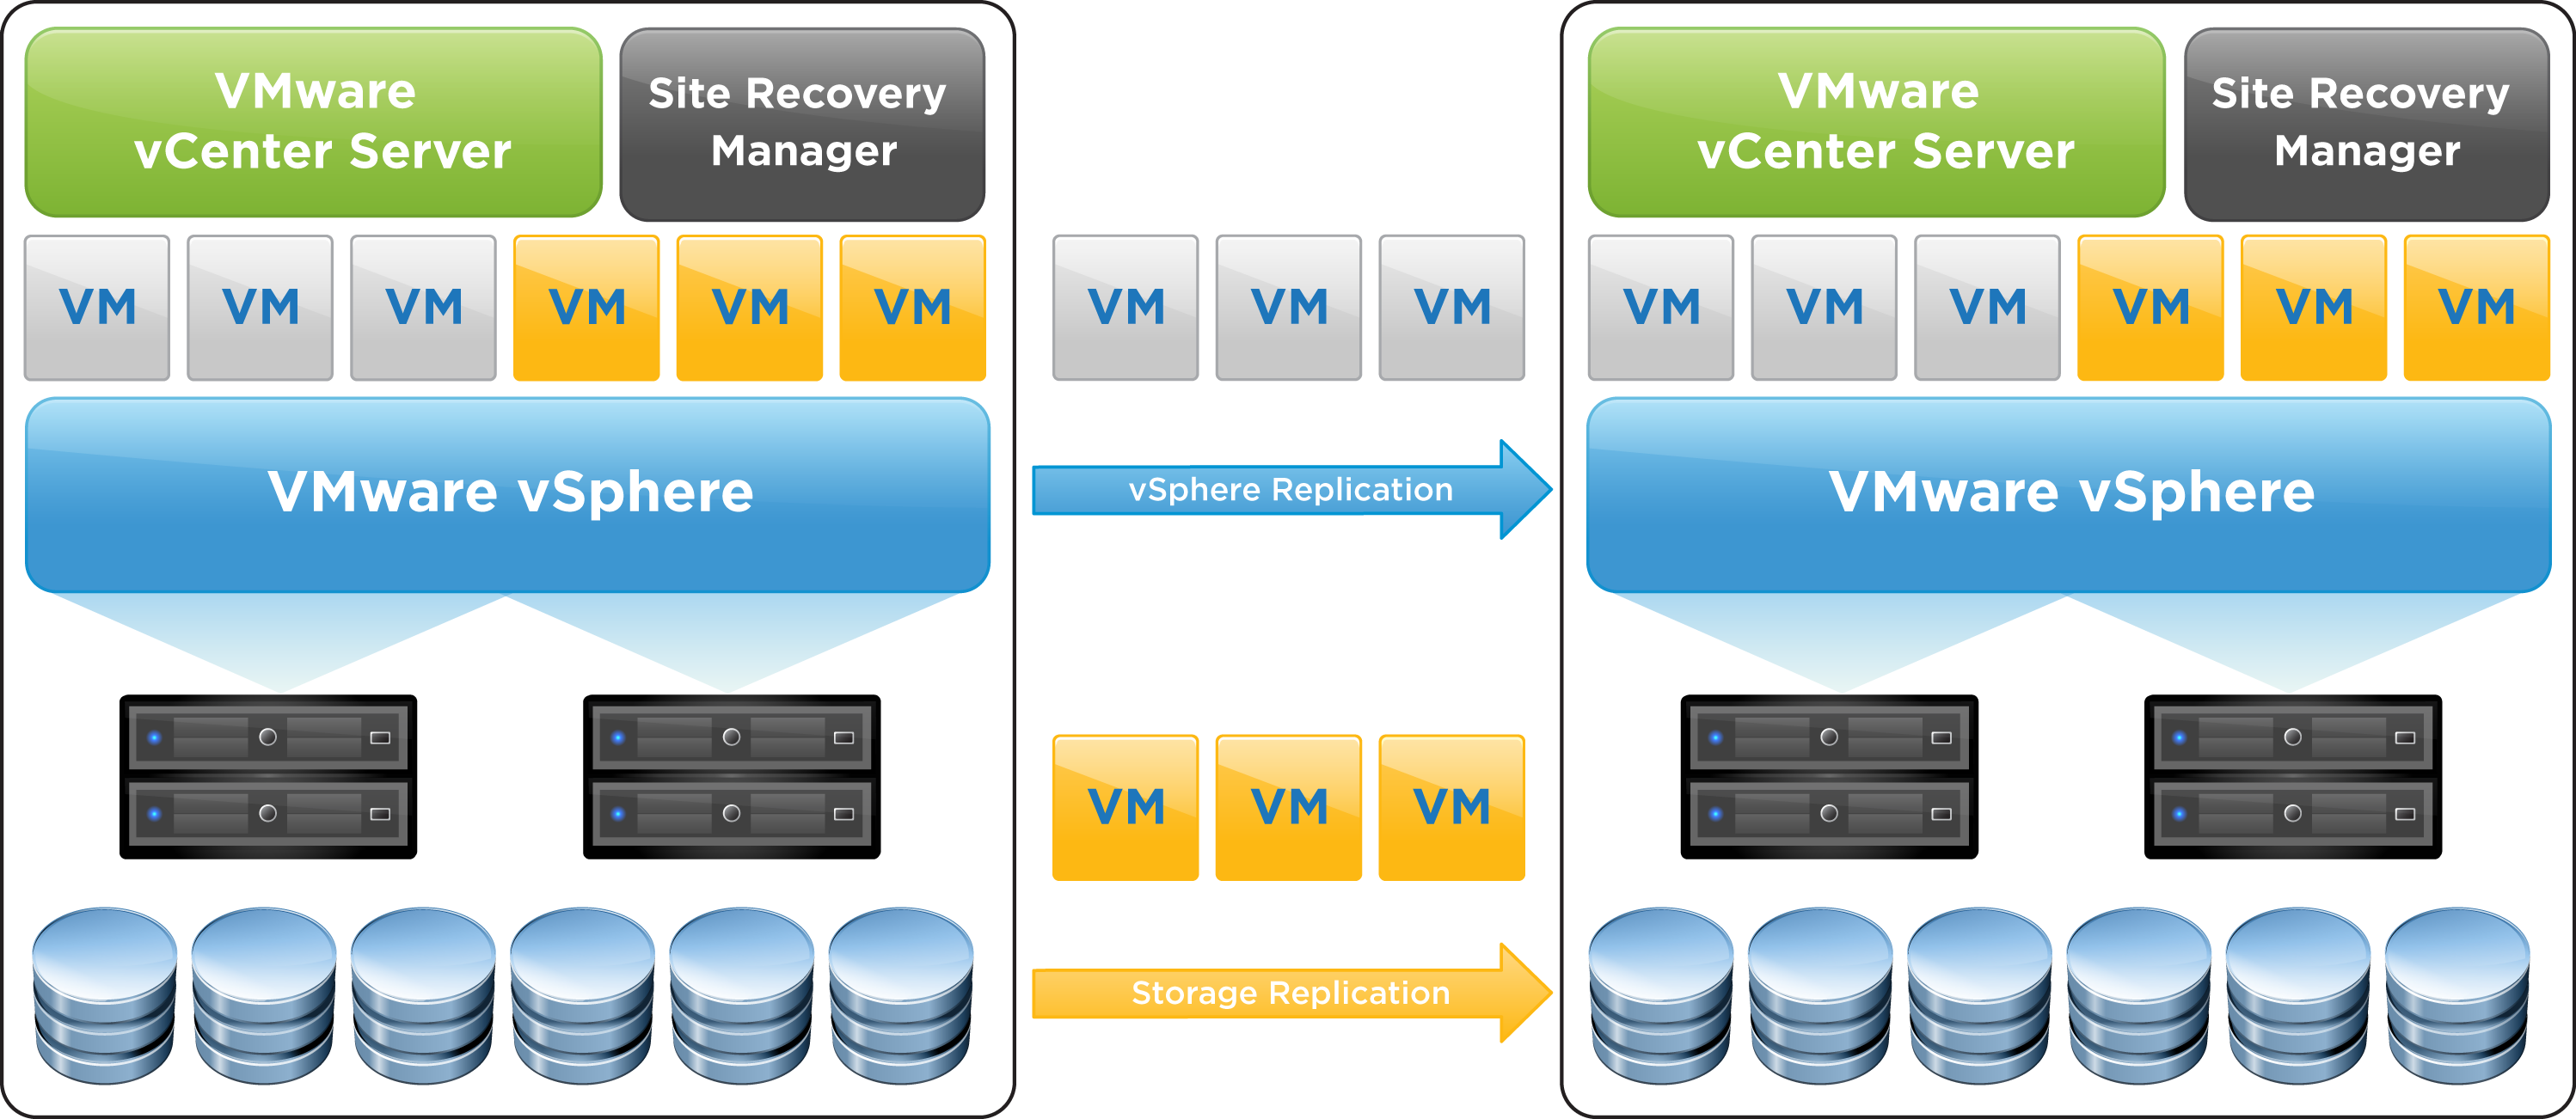 Building A Disaster Recovery Solution Using Site Recovery Manager